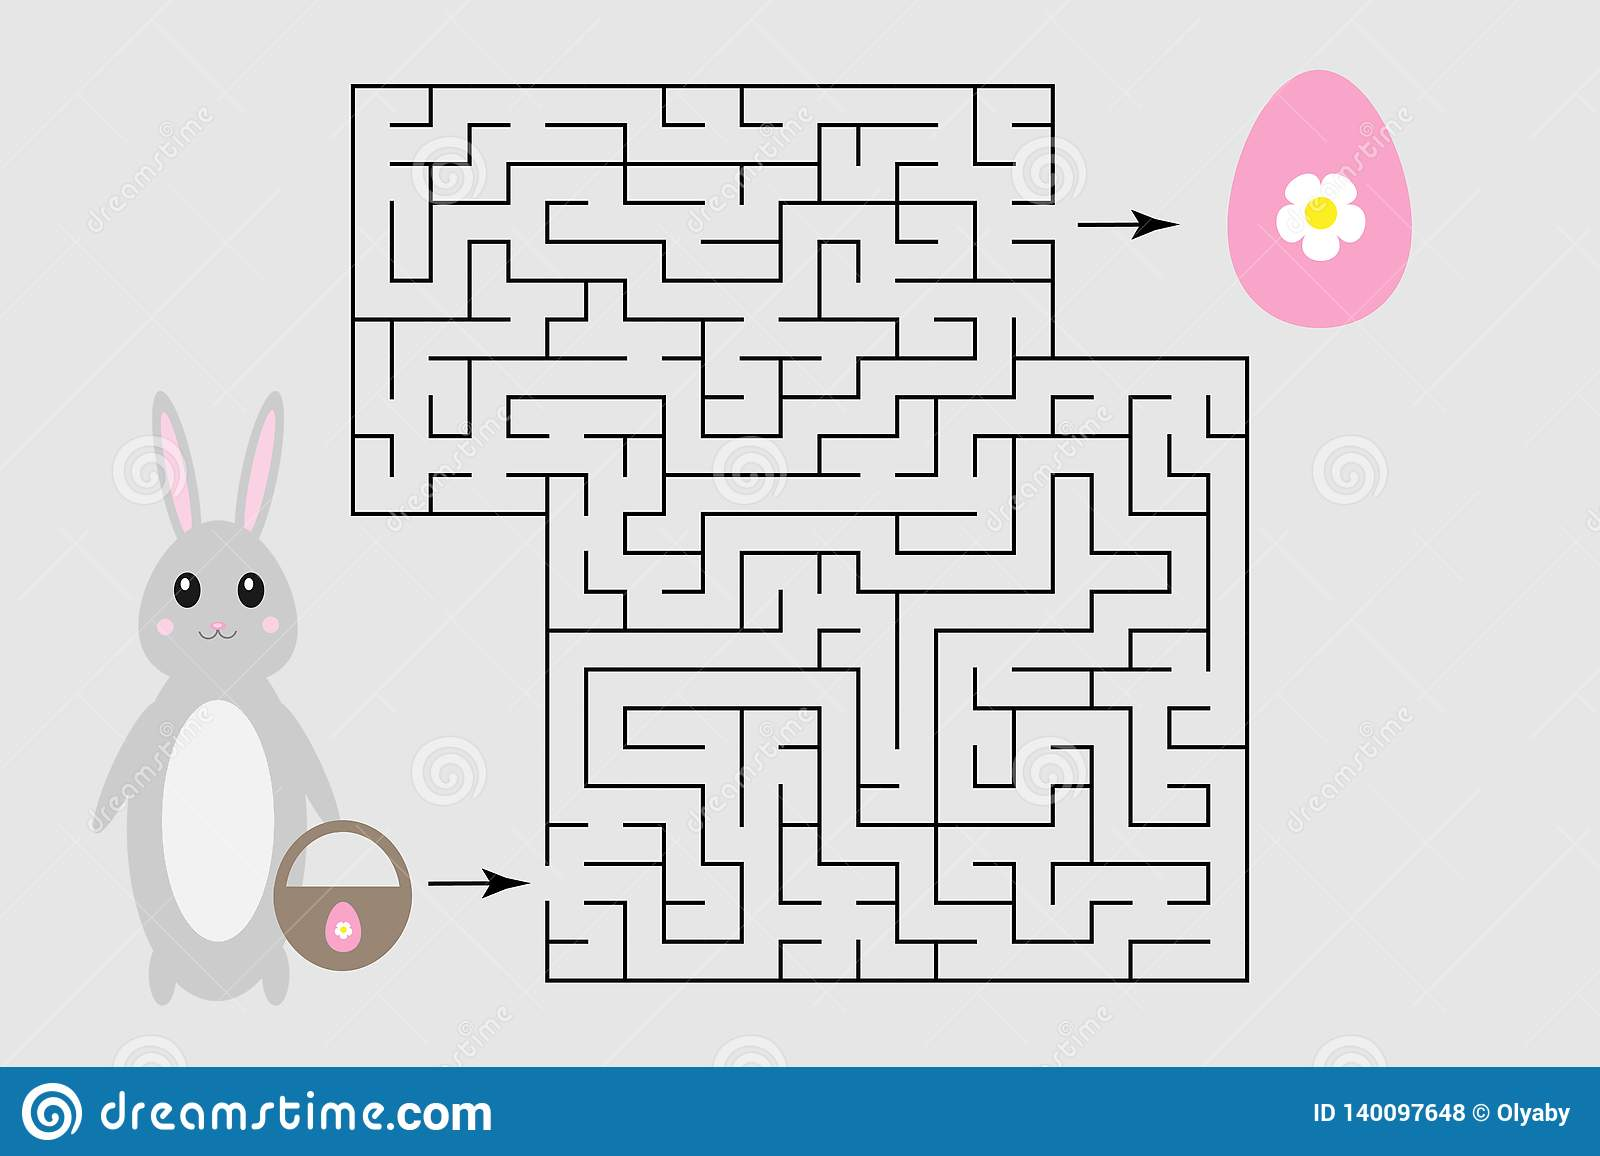 Easter Labyrinth Game Help The Bunny To Find A Way Out Of